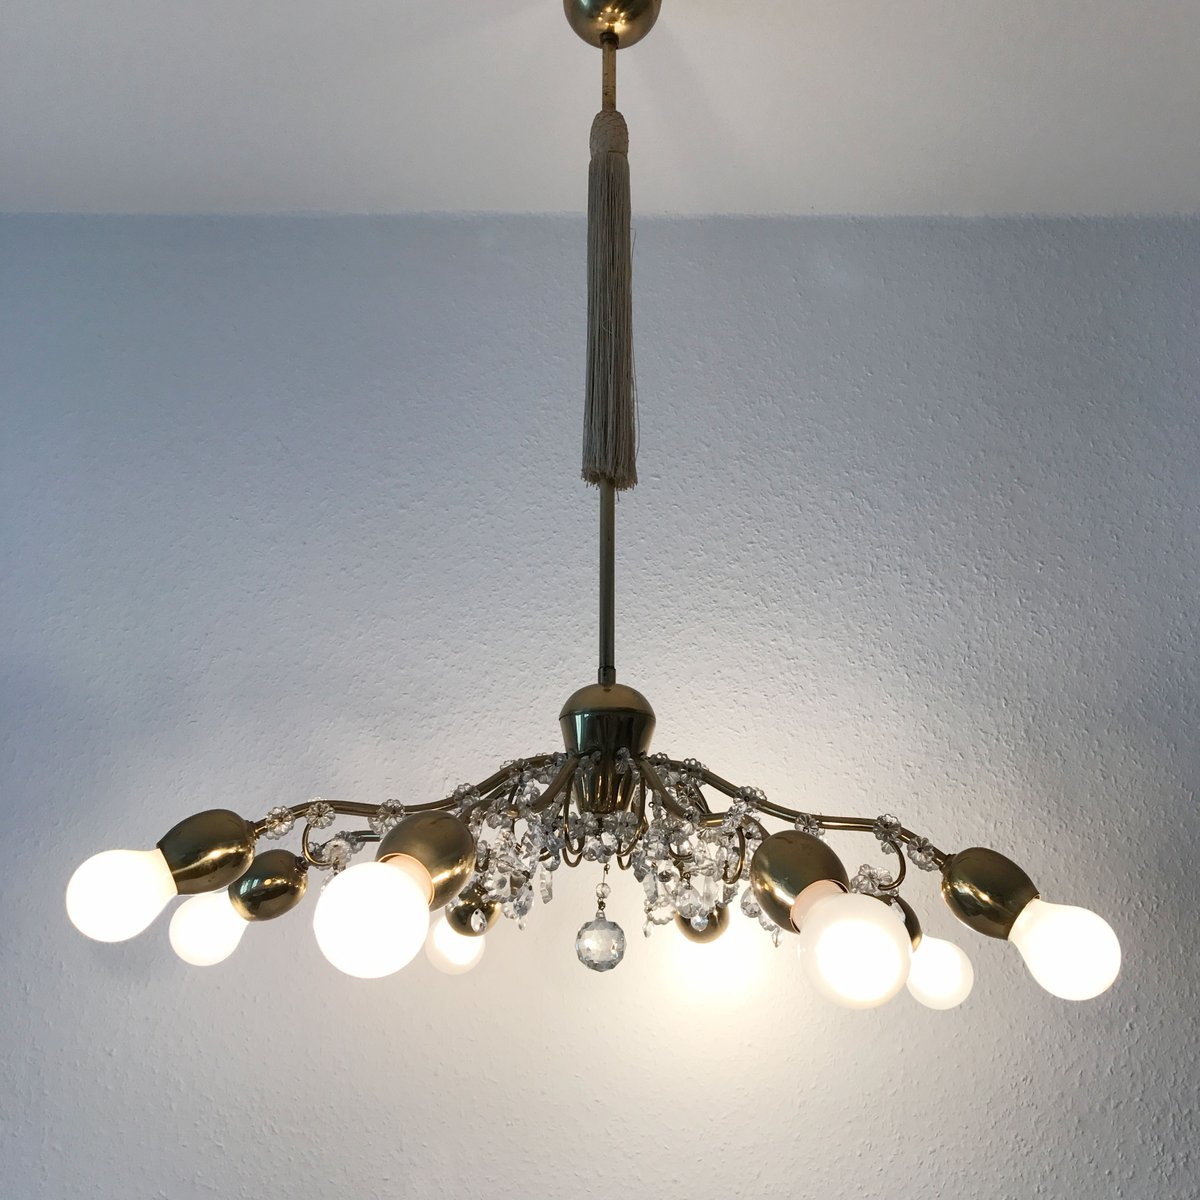 mid century modern large pendant lamp from lobmeyr for sale at pamono. Black Bedroom Furniture Sets. Home Design Ideas